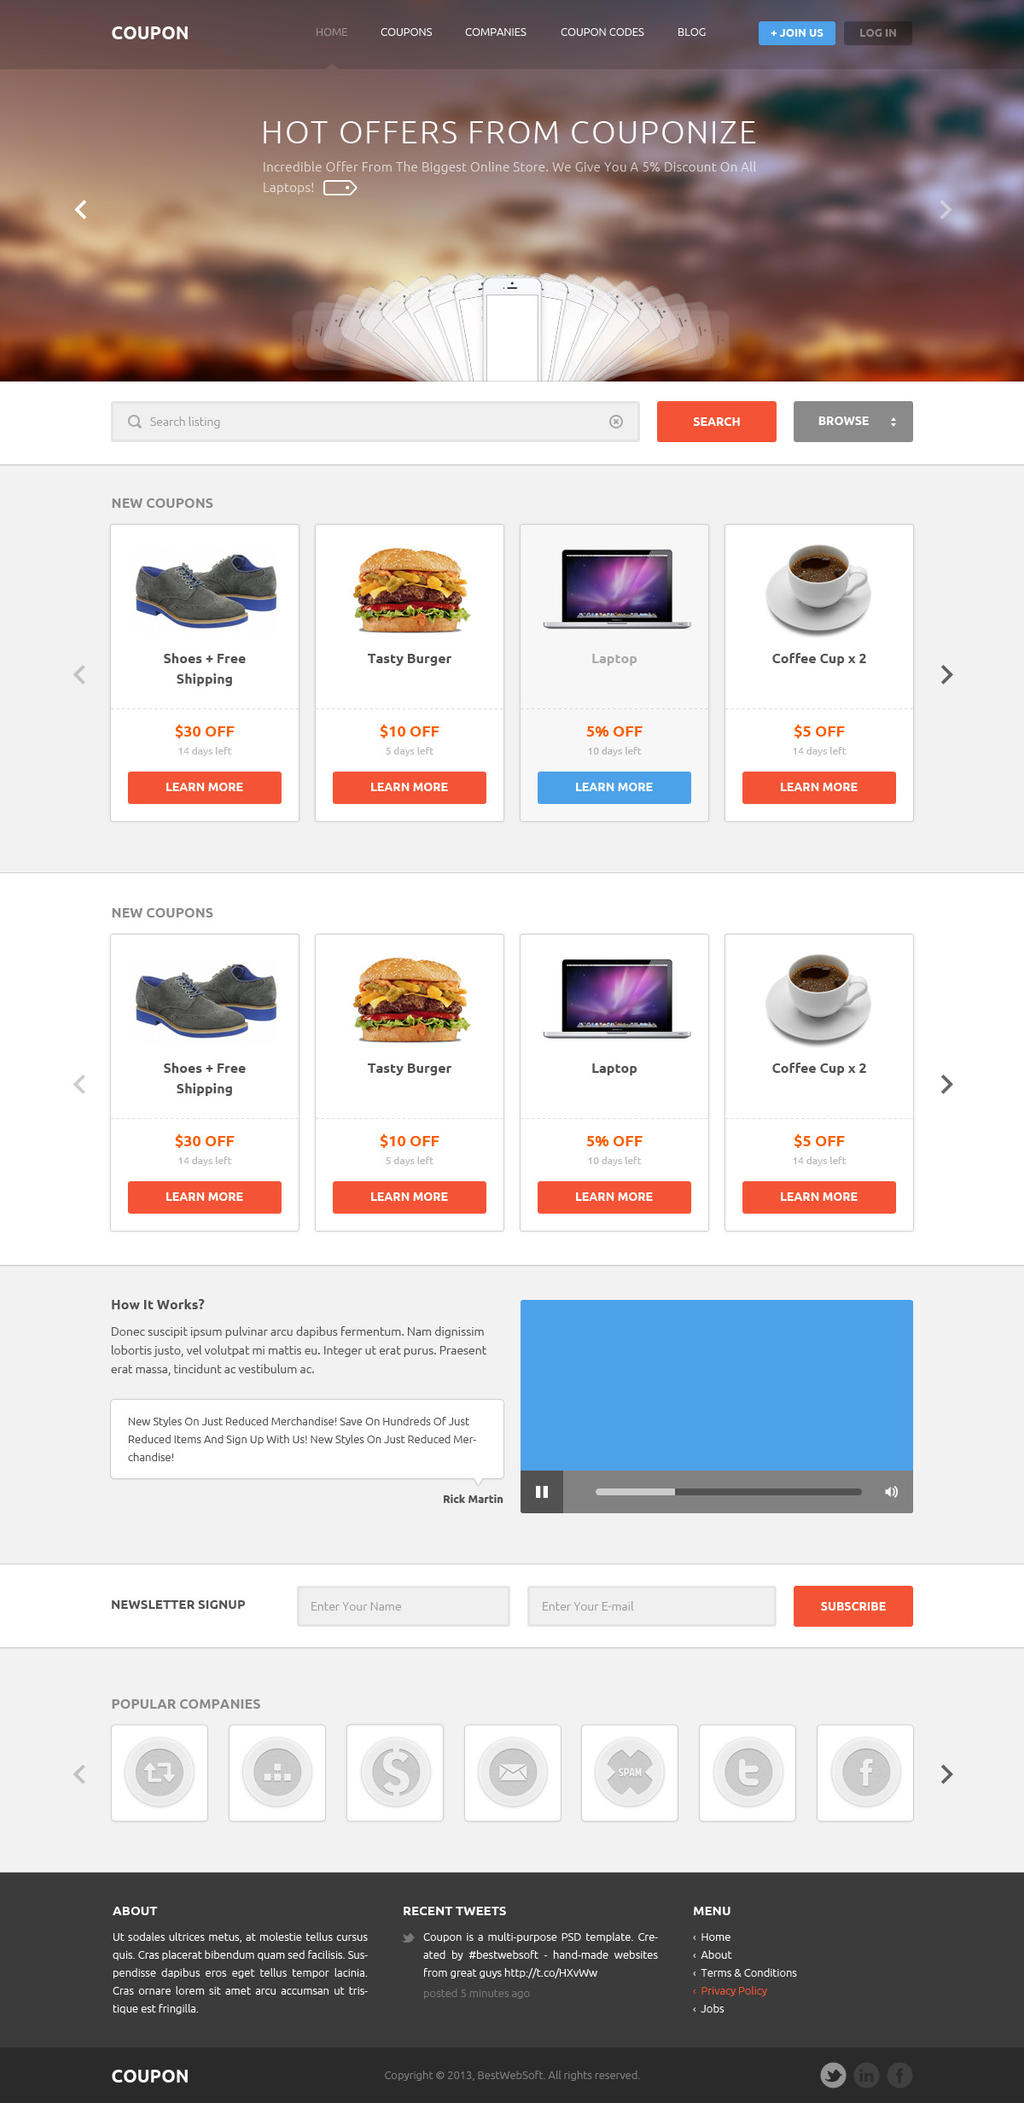 How to use a WIX coupon